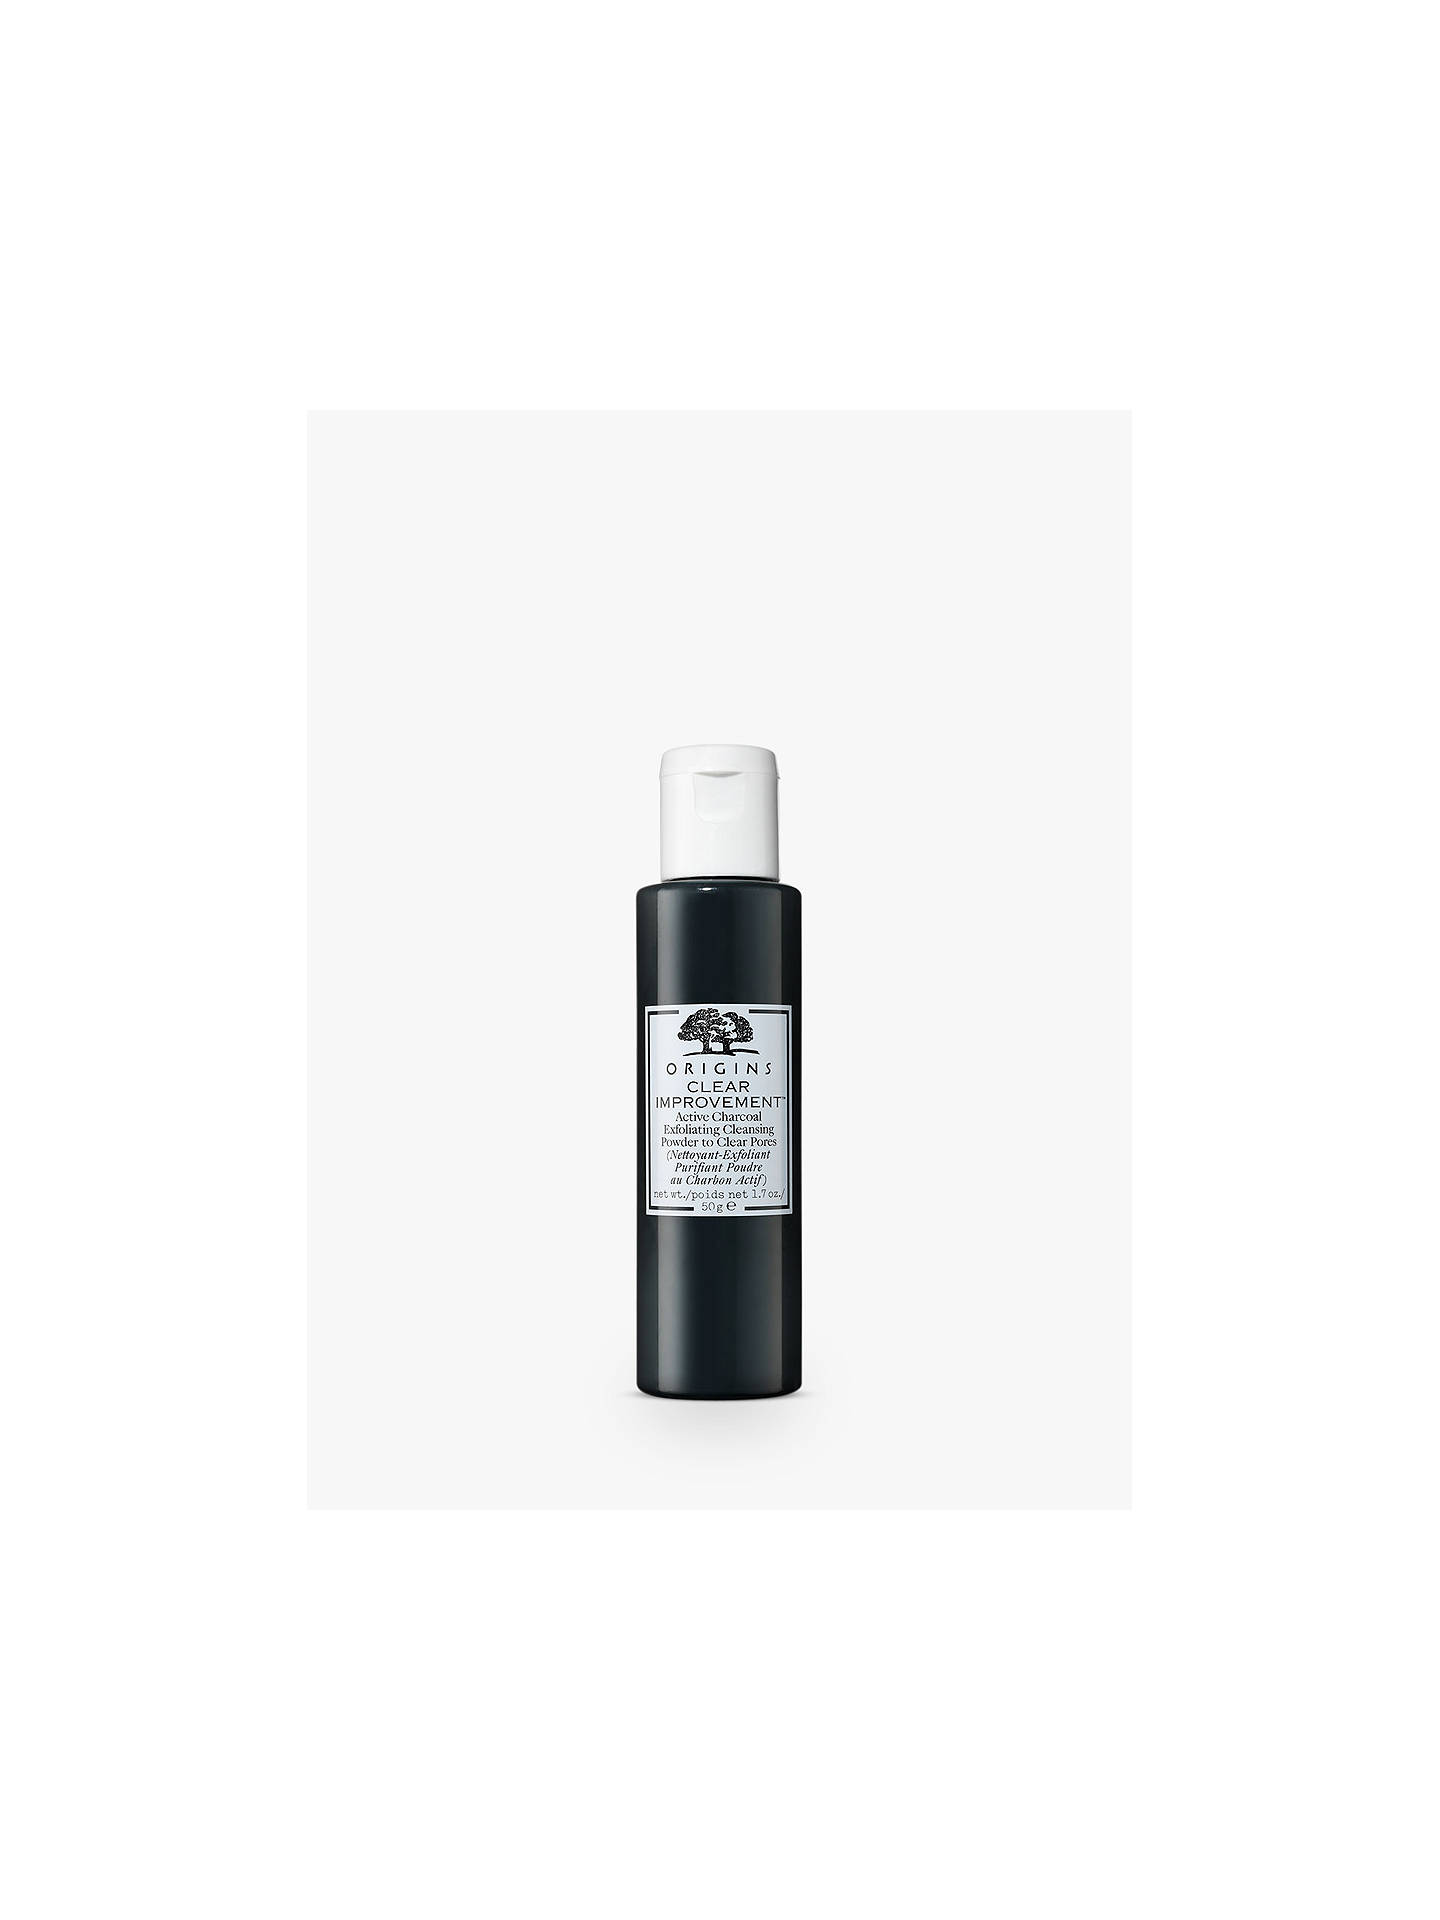 Buy Origins Clear Improvement Active Charcoal Exfoliating Cleansing Powder, 50g Online at johnlewis.com